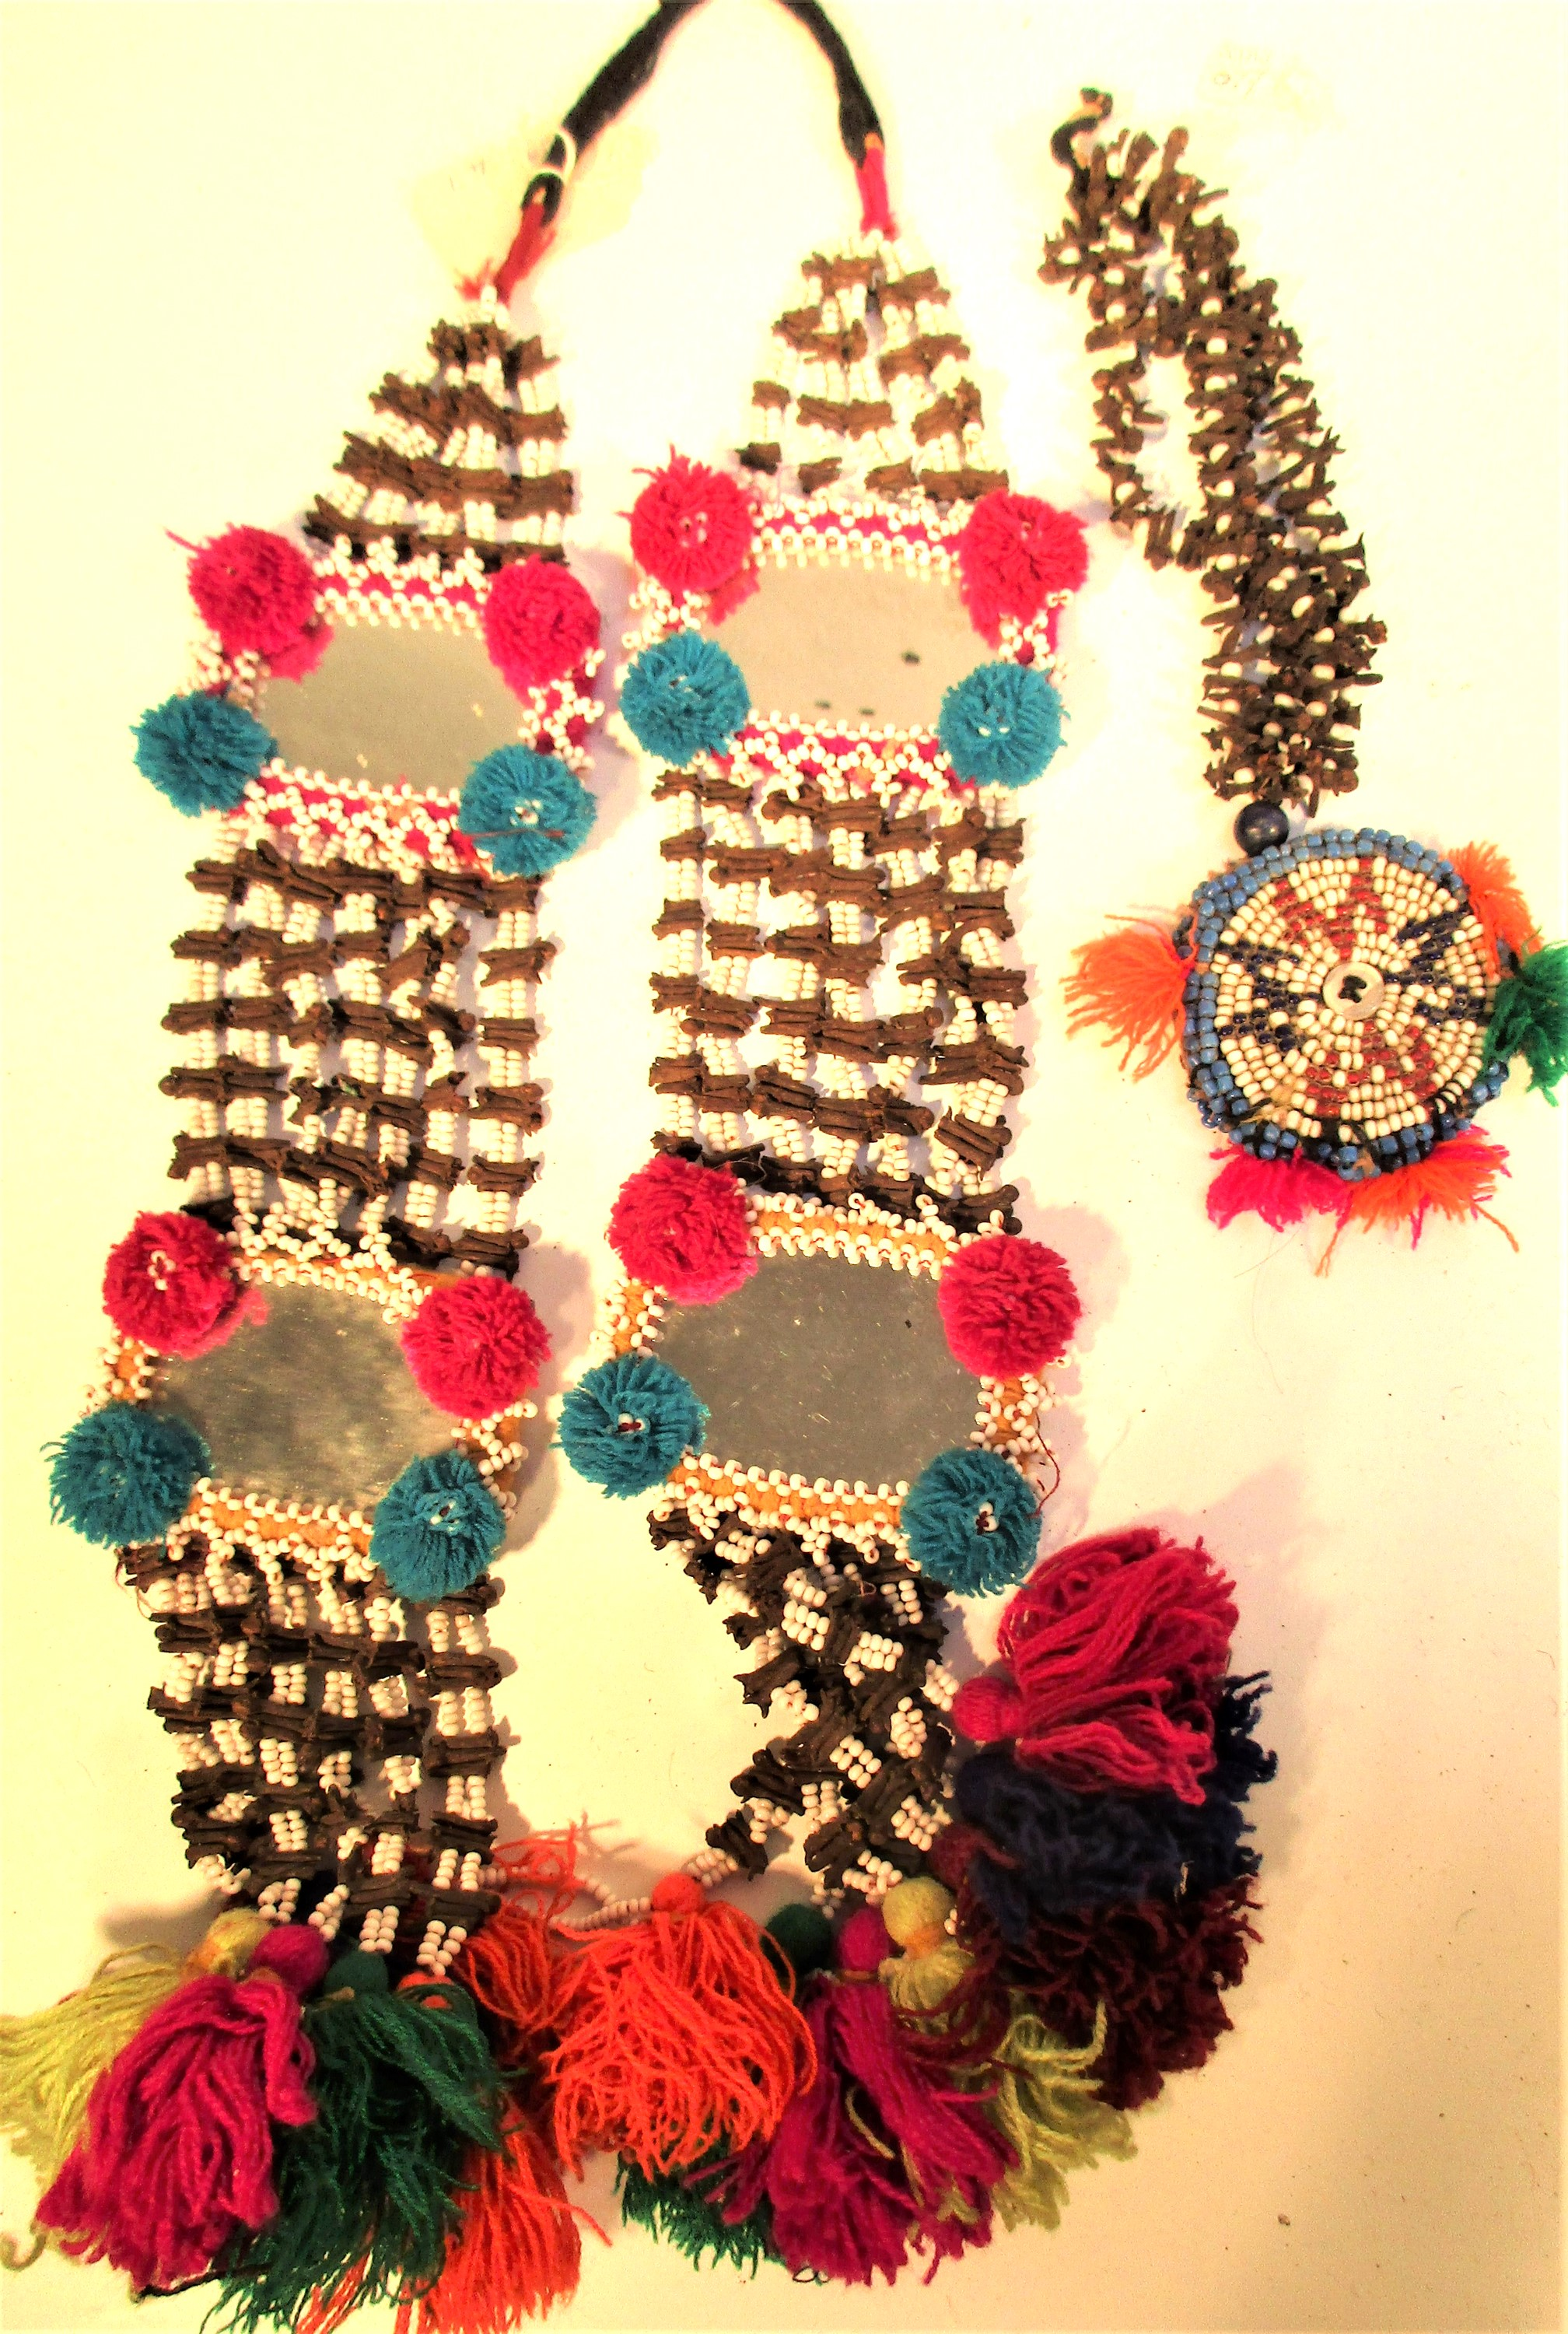 Afghanistan. Mirror, cloves and gul-i-peron. This would be hung amongst cloths, textiles and